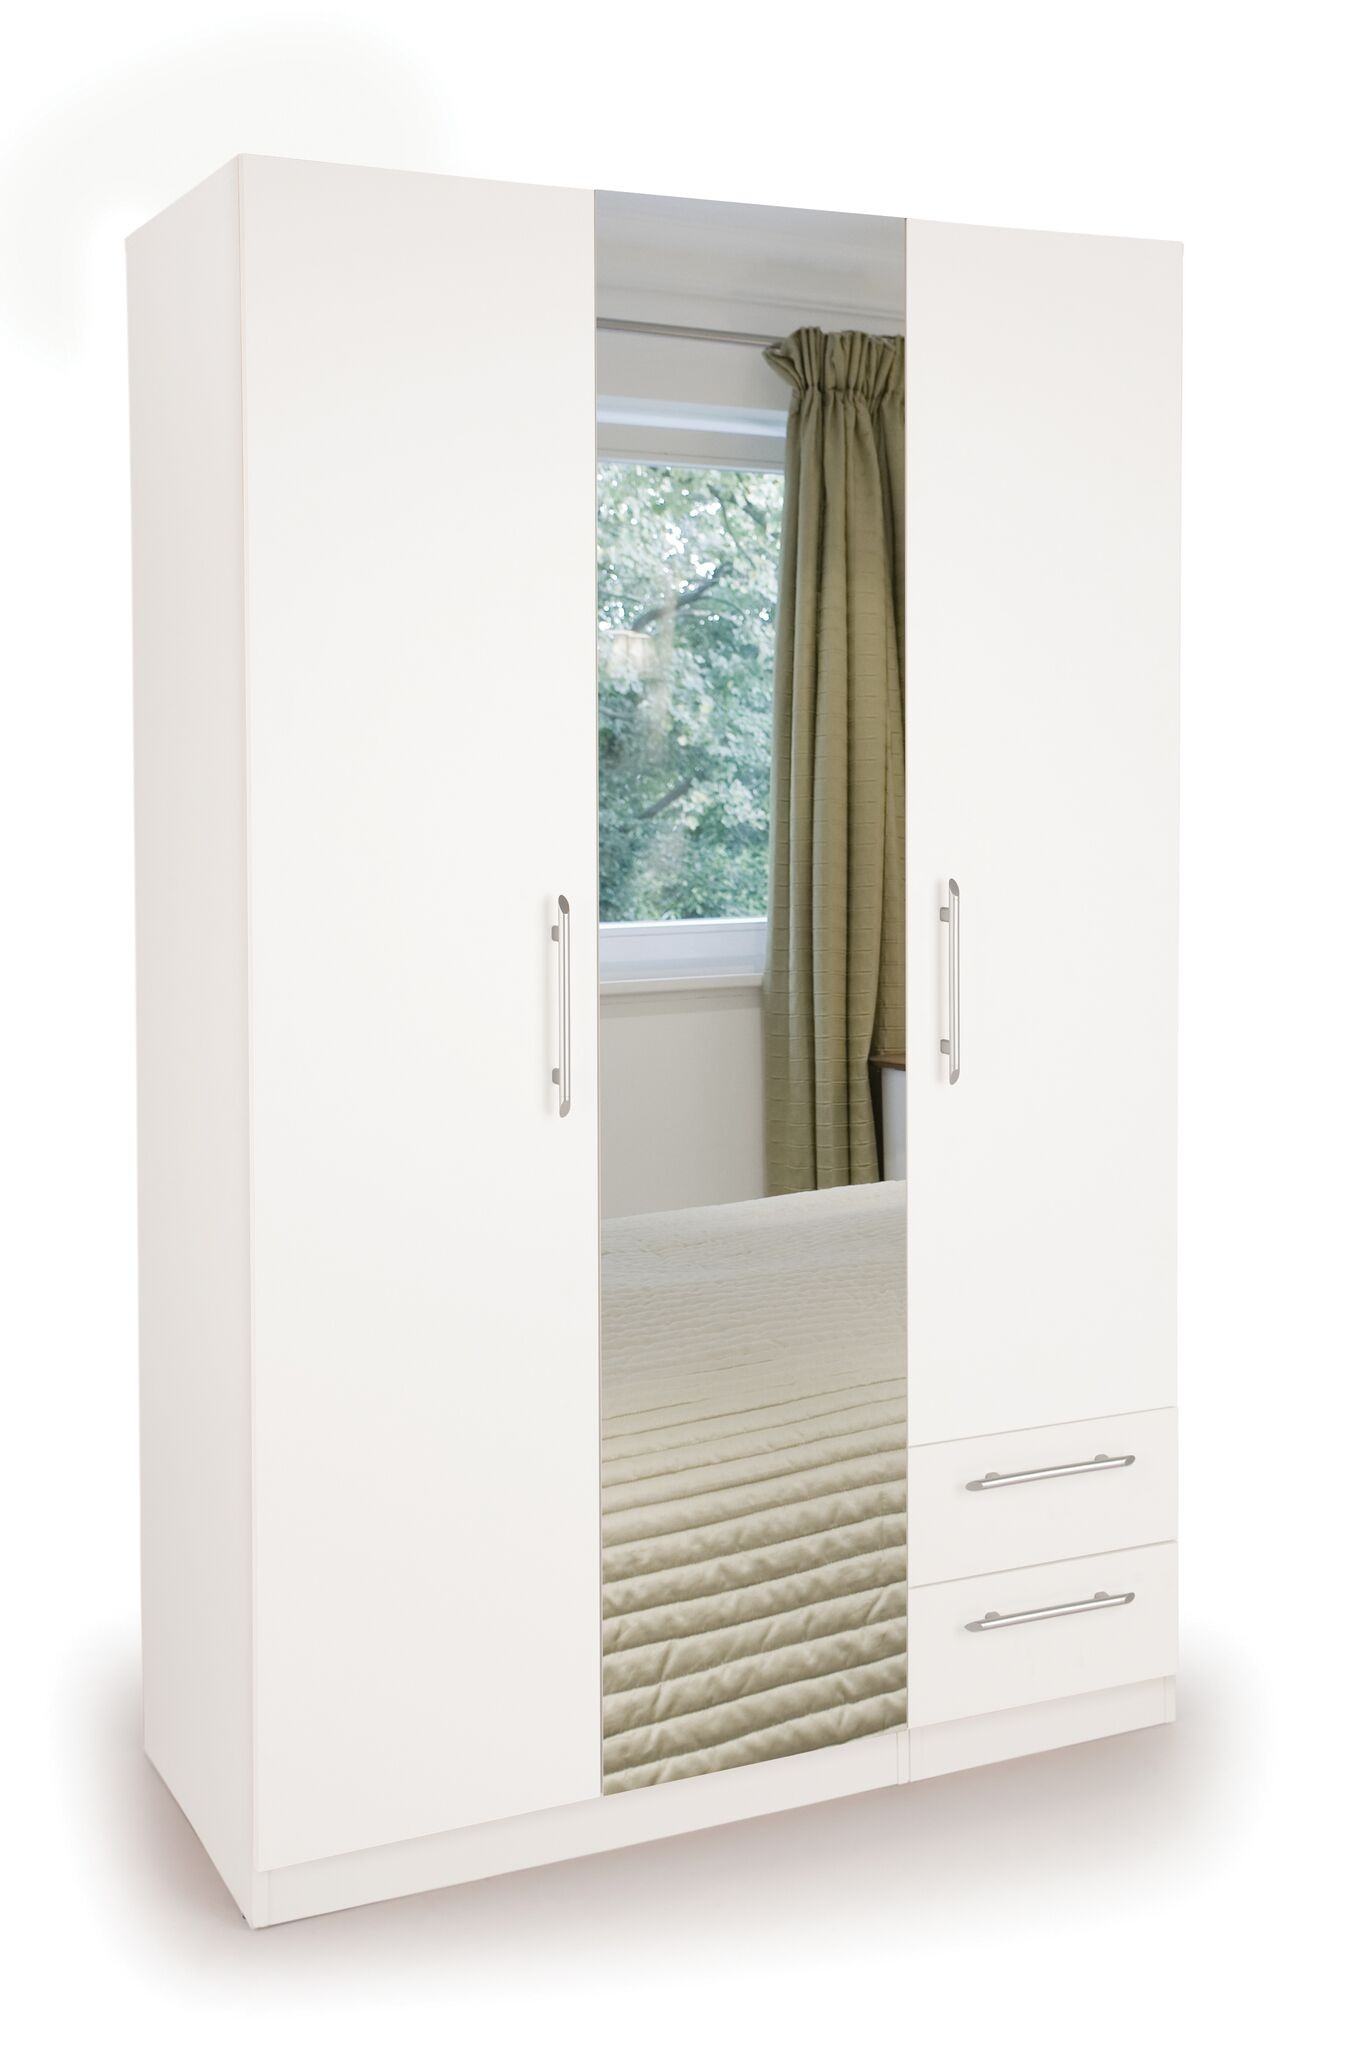 Connect Acton 3 Door Wardrobe with 2 Drawers and Mirror